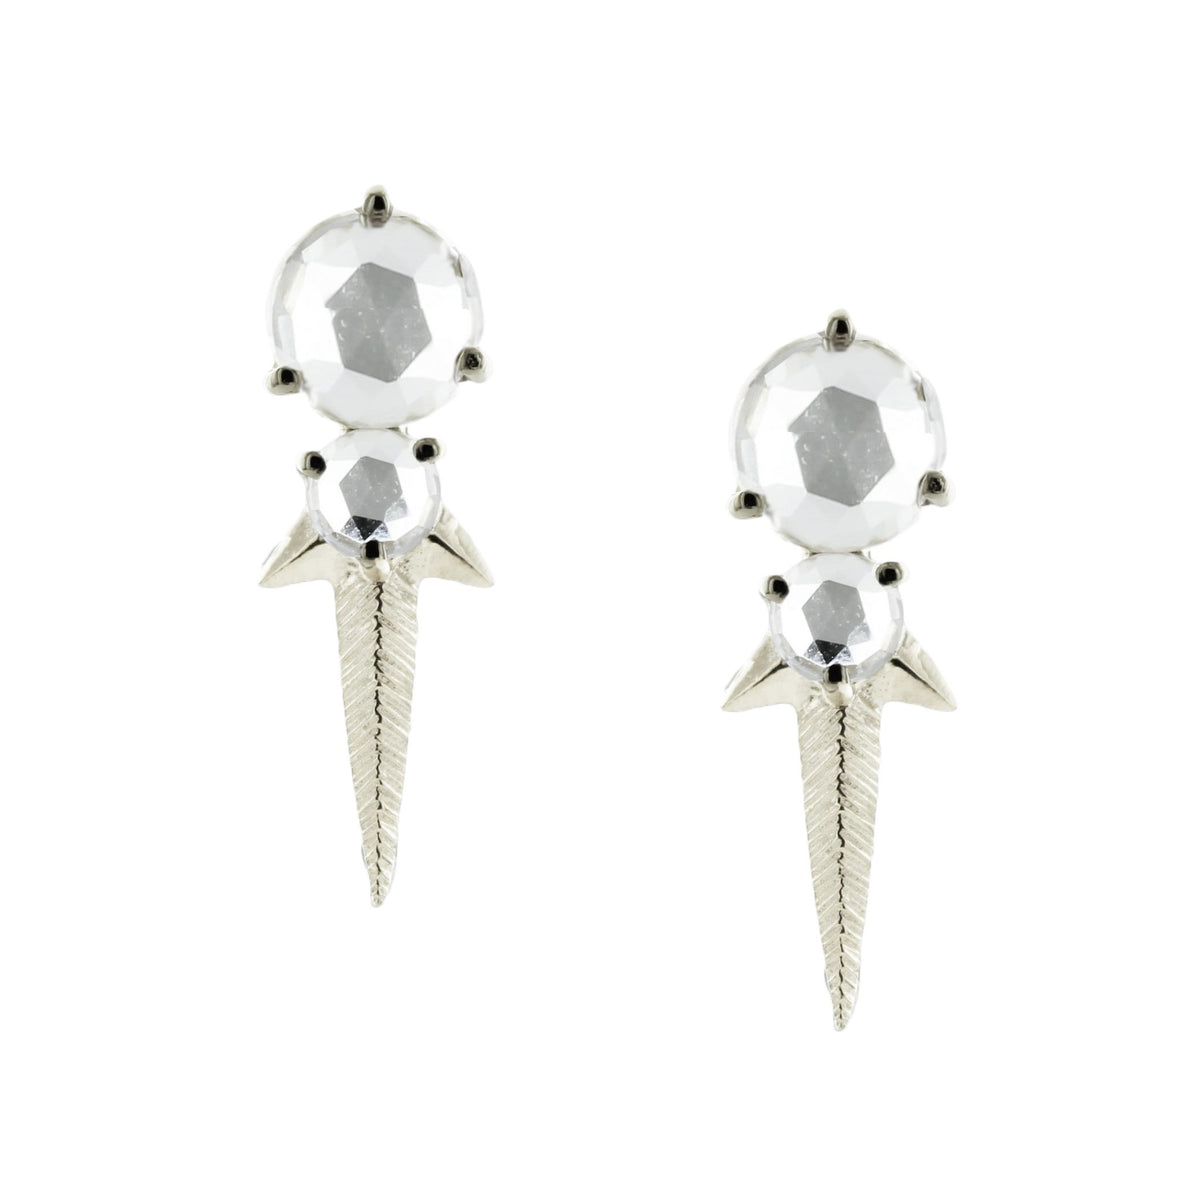 WONDER FALLING STAR STUDS - WHITE TOPAZ & SILVER - SO PRETTY CARA COTTER